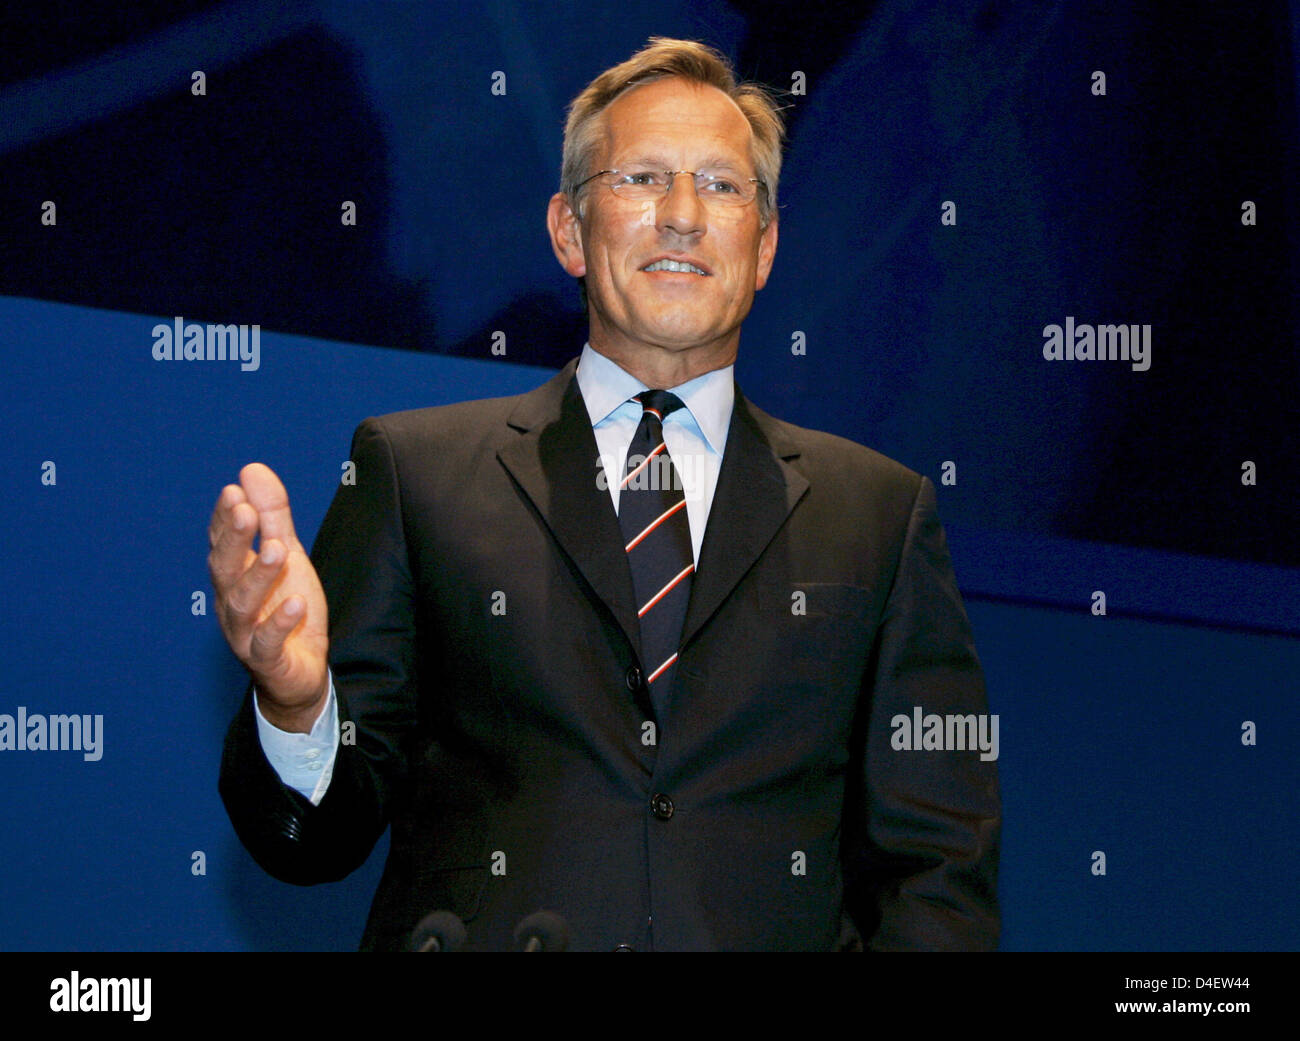 CEO of Allianz AG Michael Diekmann is pictured at the company's general meeting at the Olympic Hall in Munich, Germany, 21 May 2008. Allianz made a record profit. Diekmann affirmed talks about a reorganisation of the bank industry of Allianz. Photo: MATTHIAS SCHRADER Stock Photo